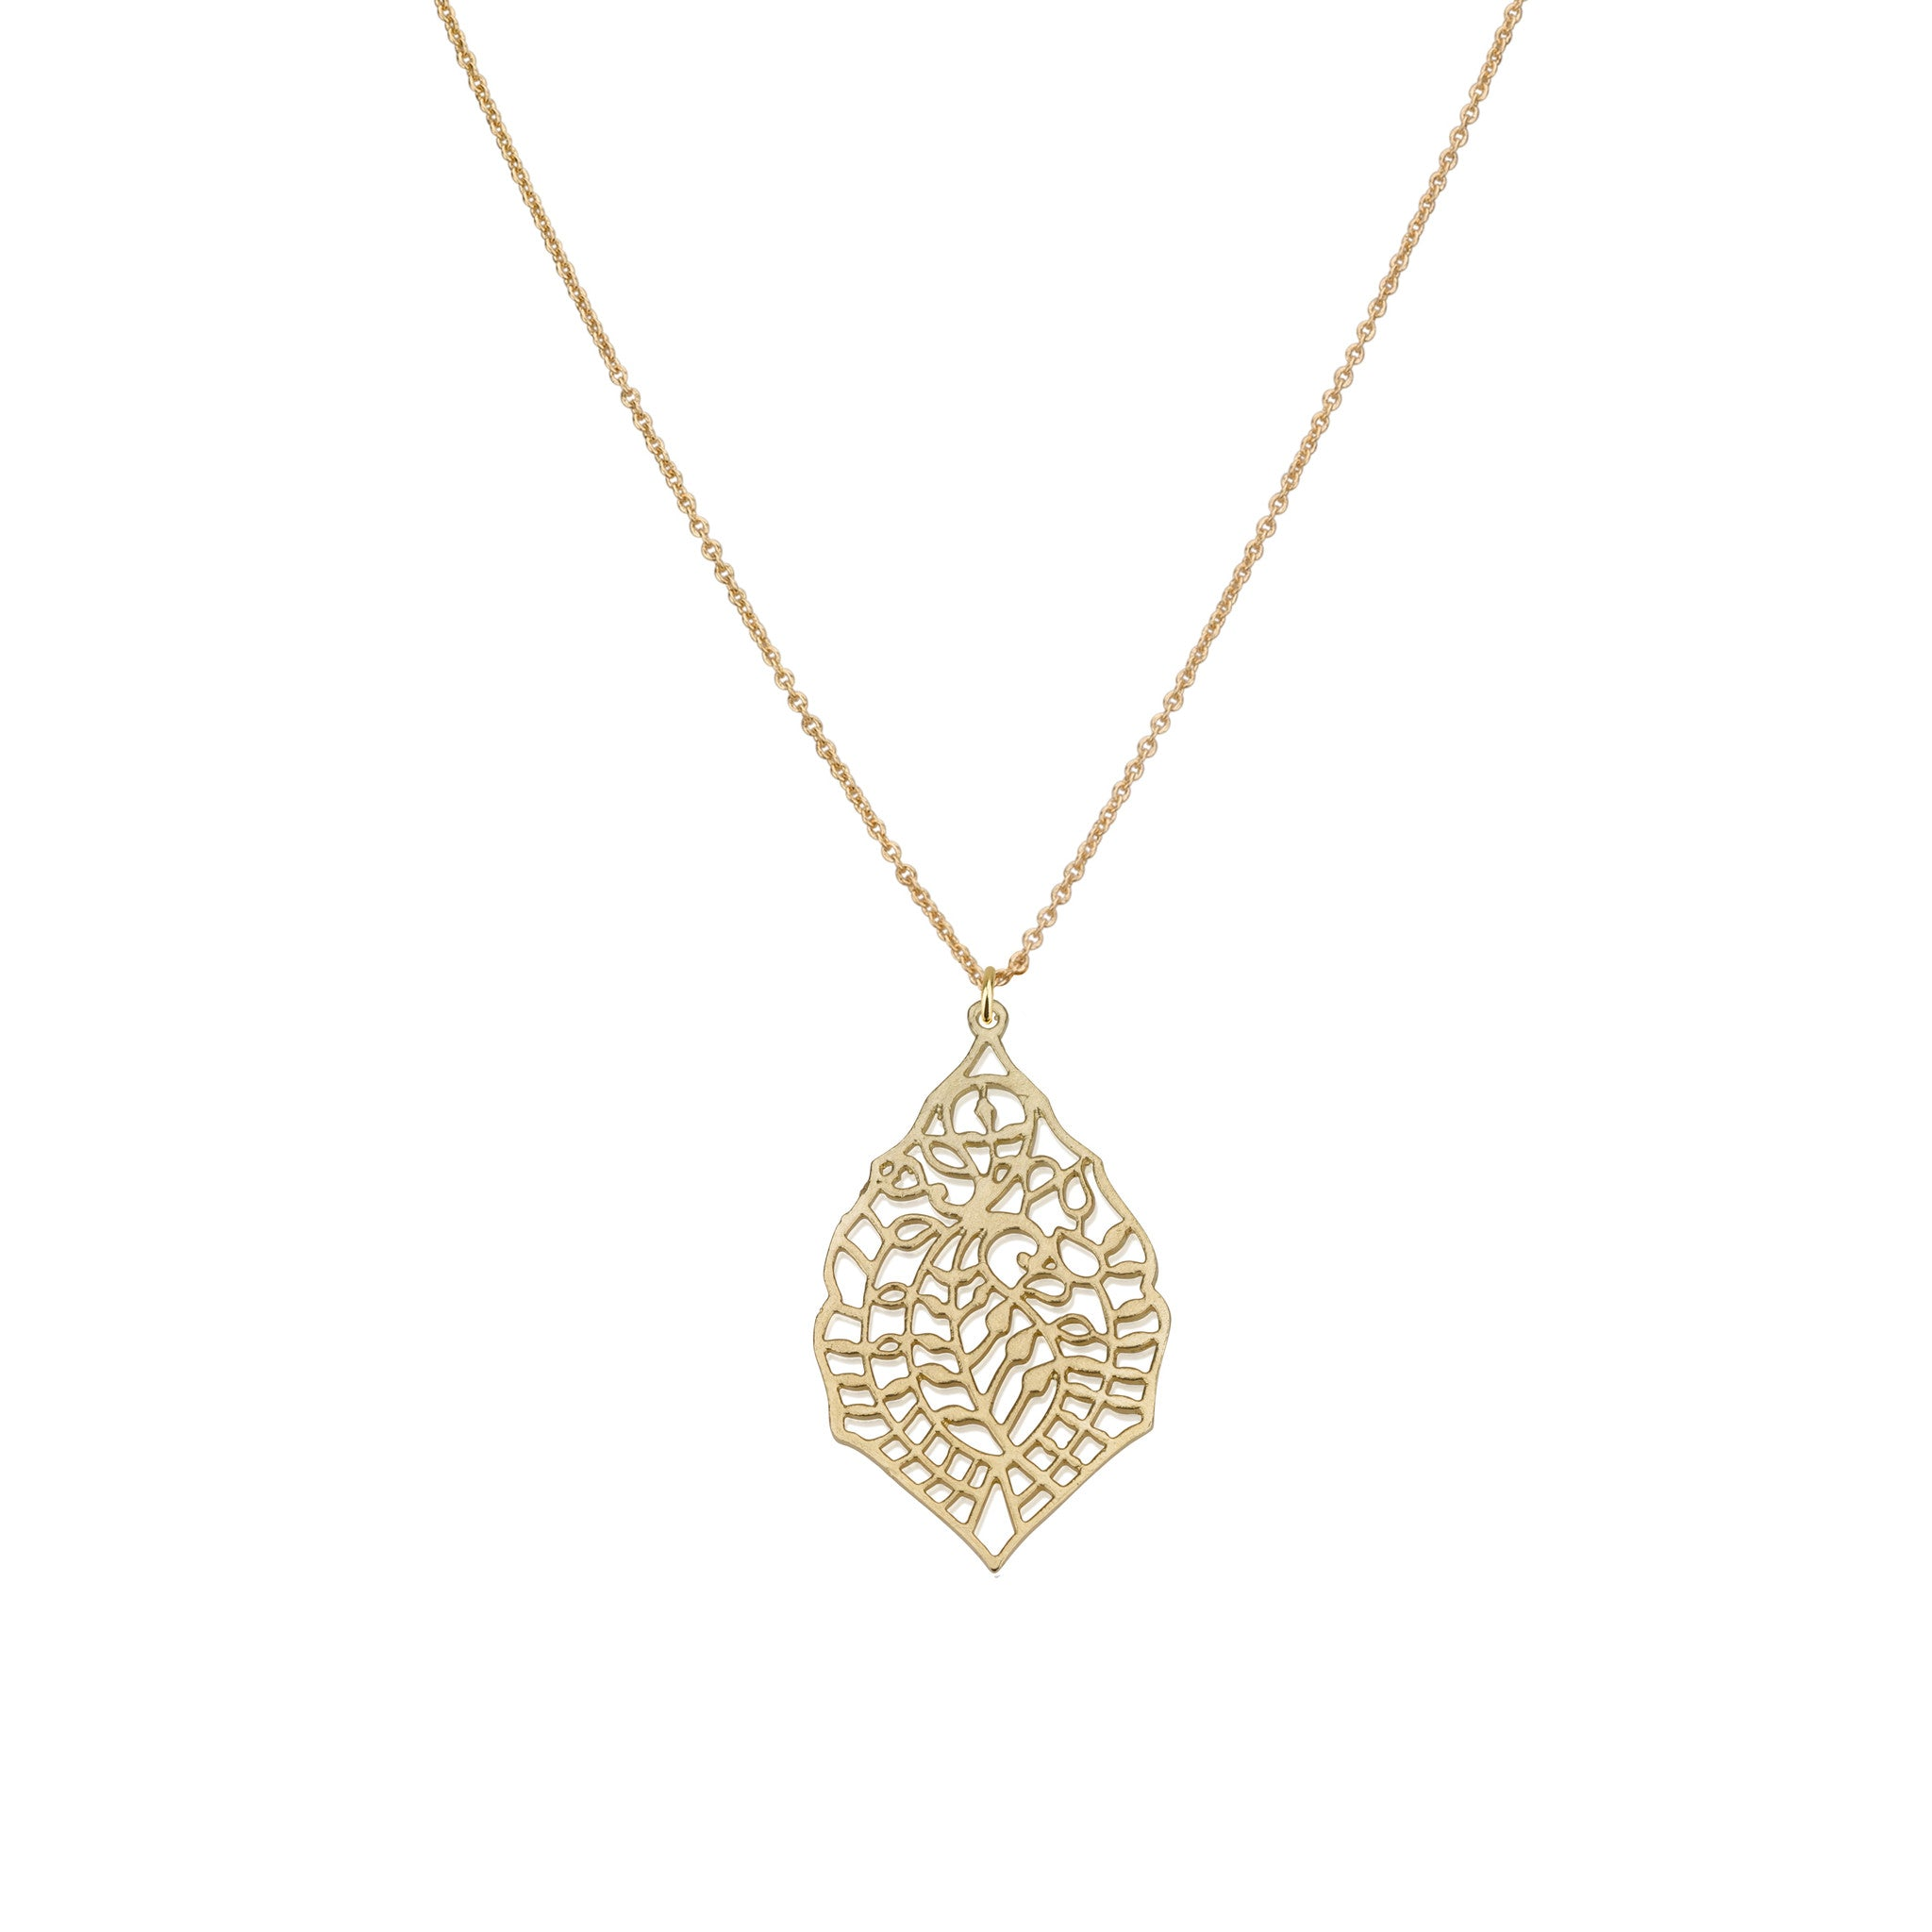 Necklaces - Big Leaf & Helen Chain Necklace